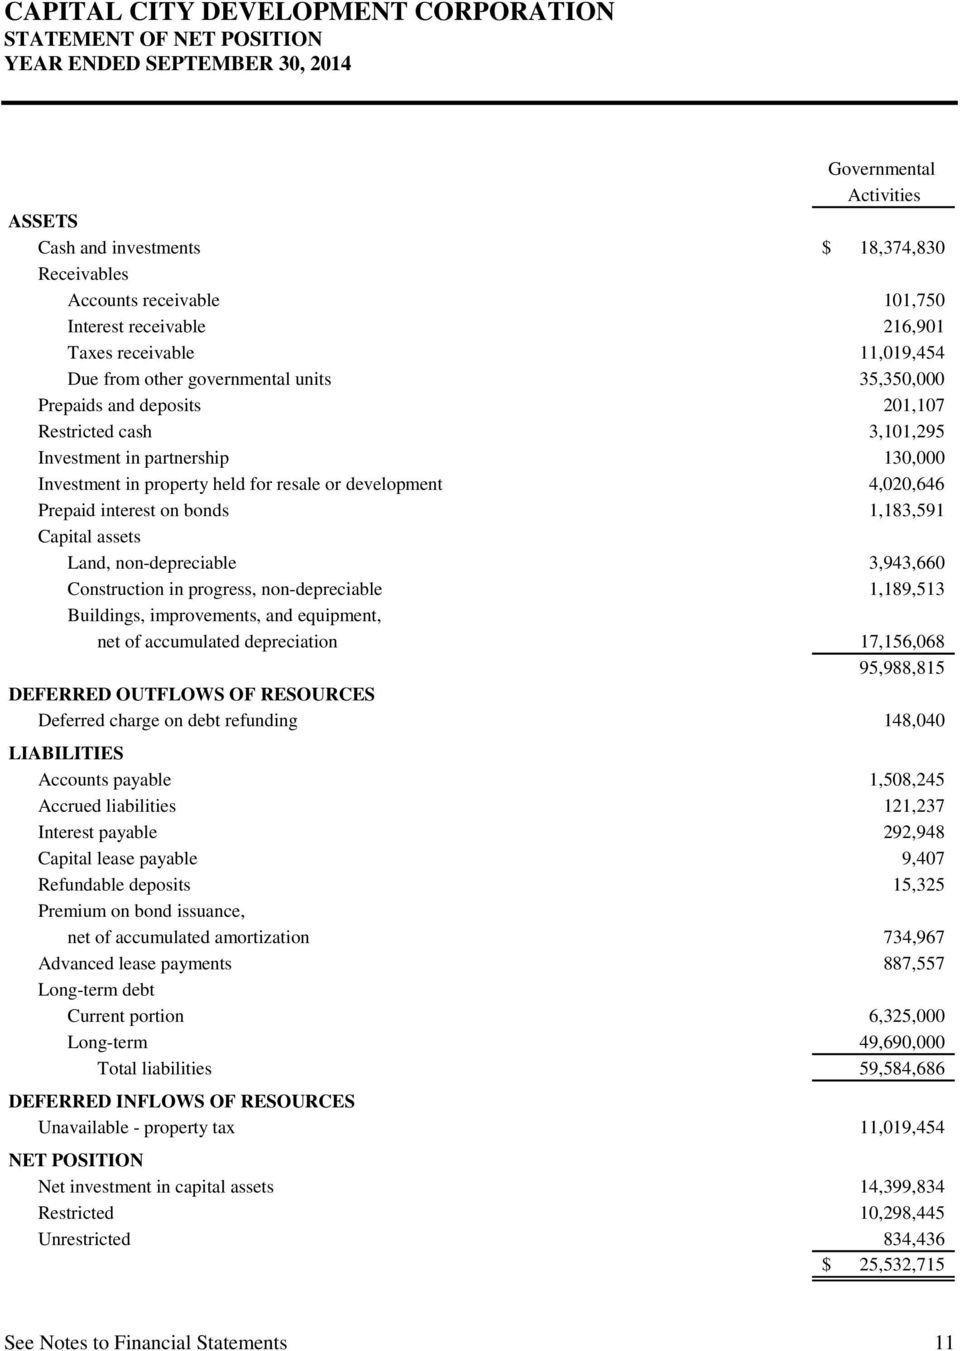 Prepaid interest on bonds 1,183,591 Capital assets Land, non-depreciable 3,943,660 Construction in progress, non-depreciable 1,189,513 Buildings, improvements, and equipment, net of accumulated